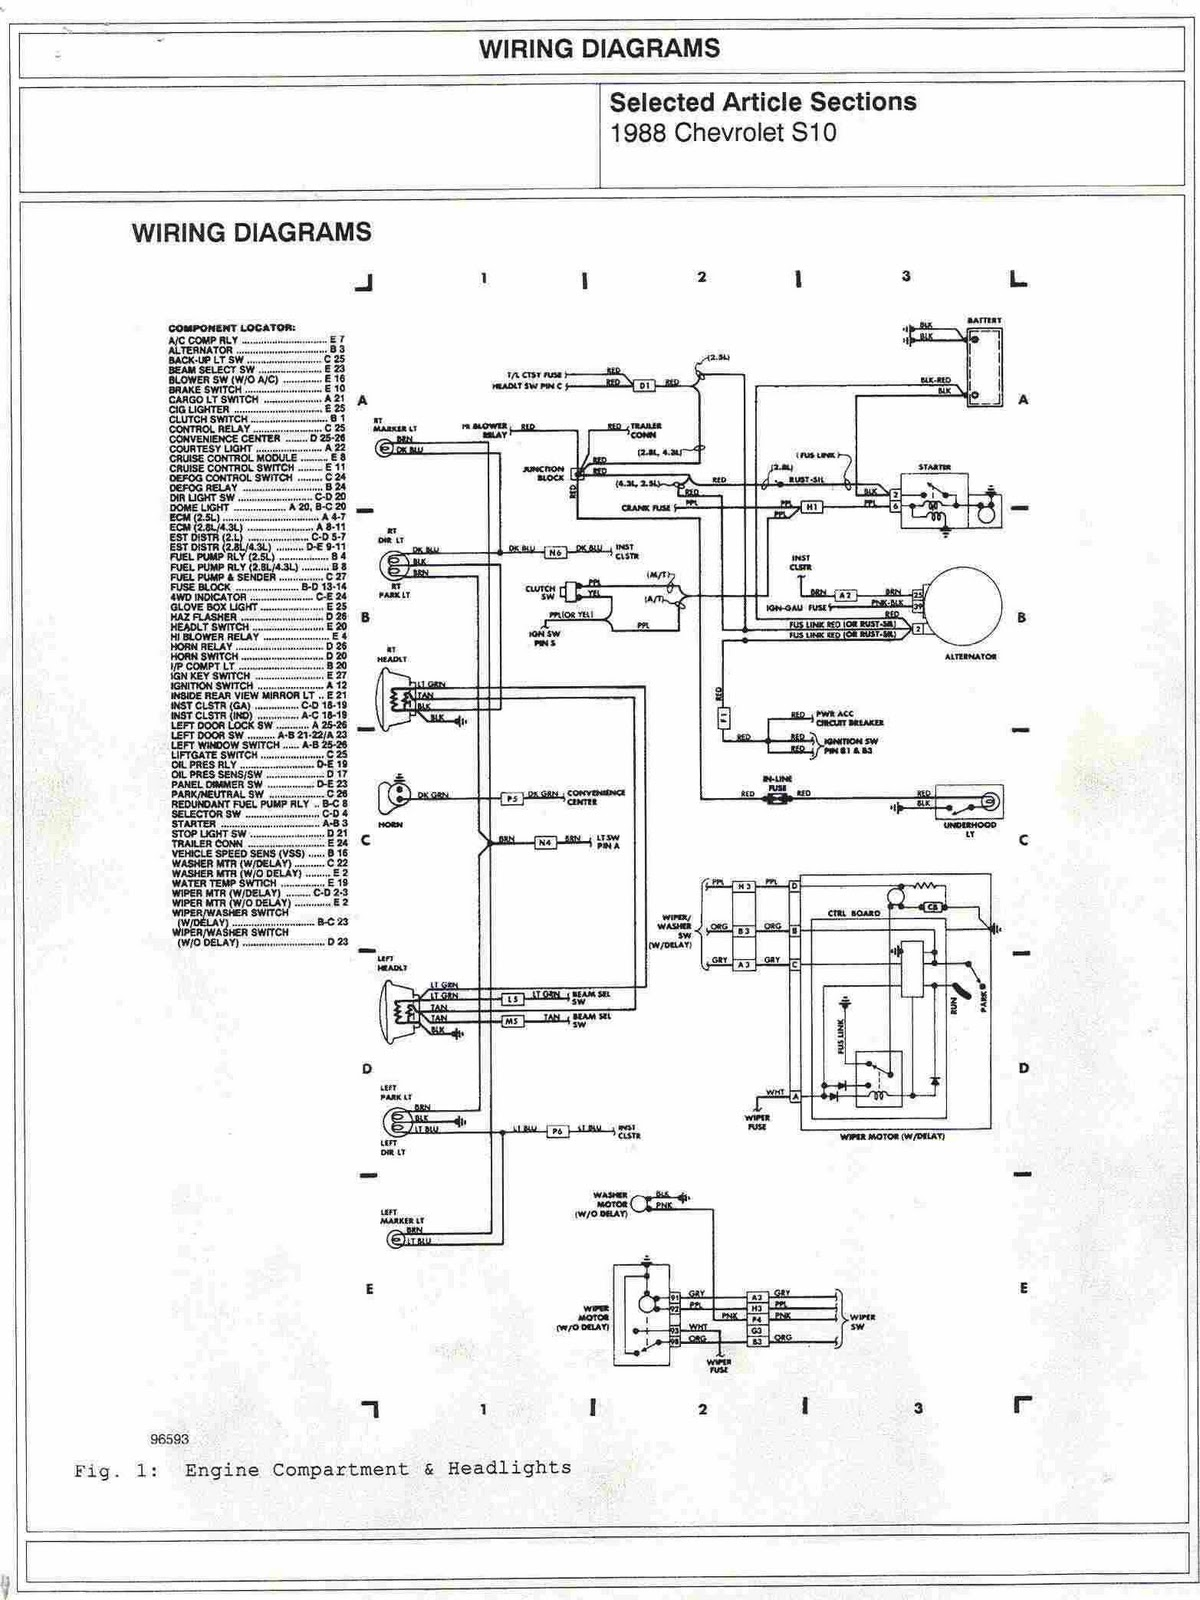 1988+Chevrolet+S10+Engine+Compartment+and+Headlights+Wiring+Diagrams 2000 chevrolet venture wiring diagram 2000 free wiring diagrams  at bayanpartner.co